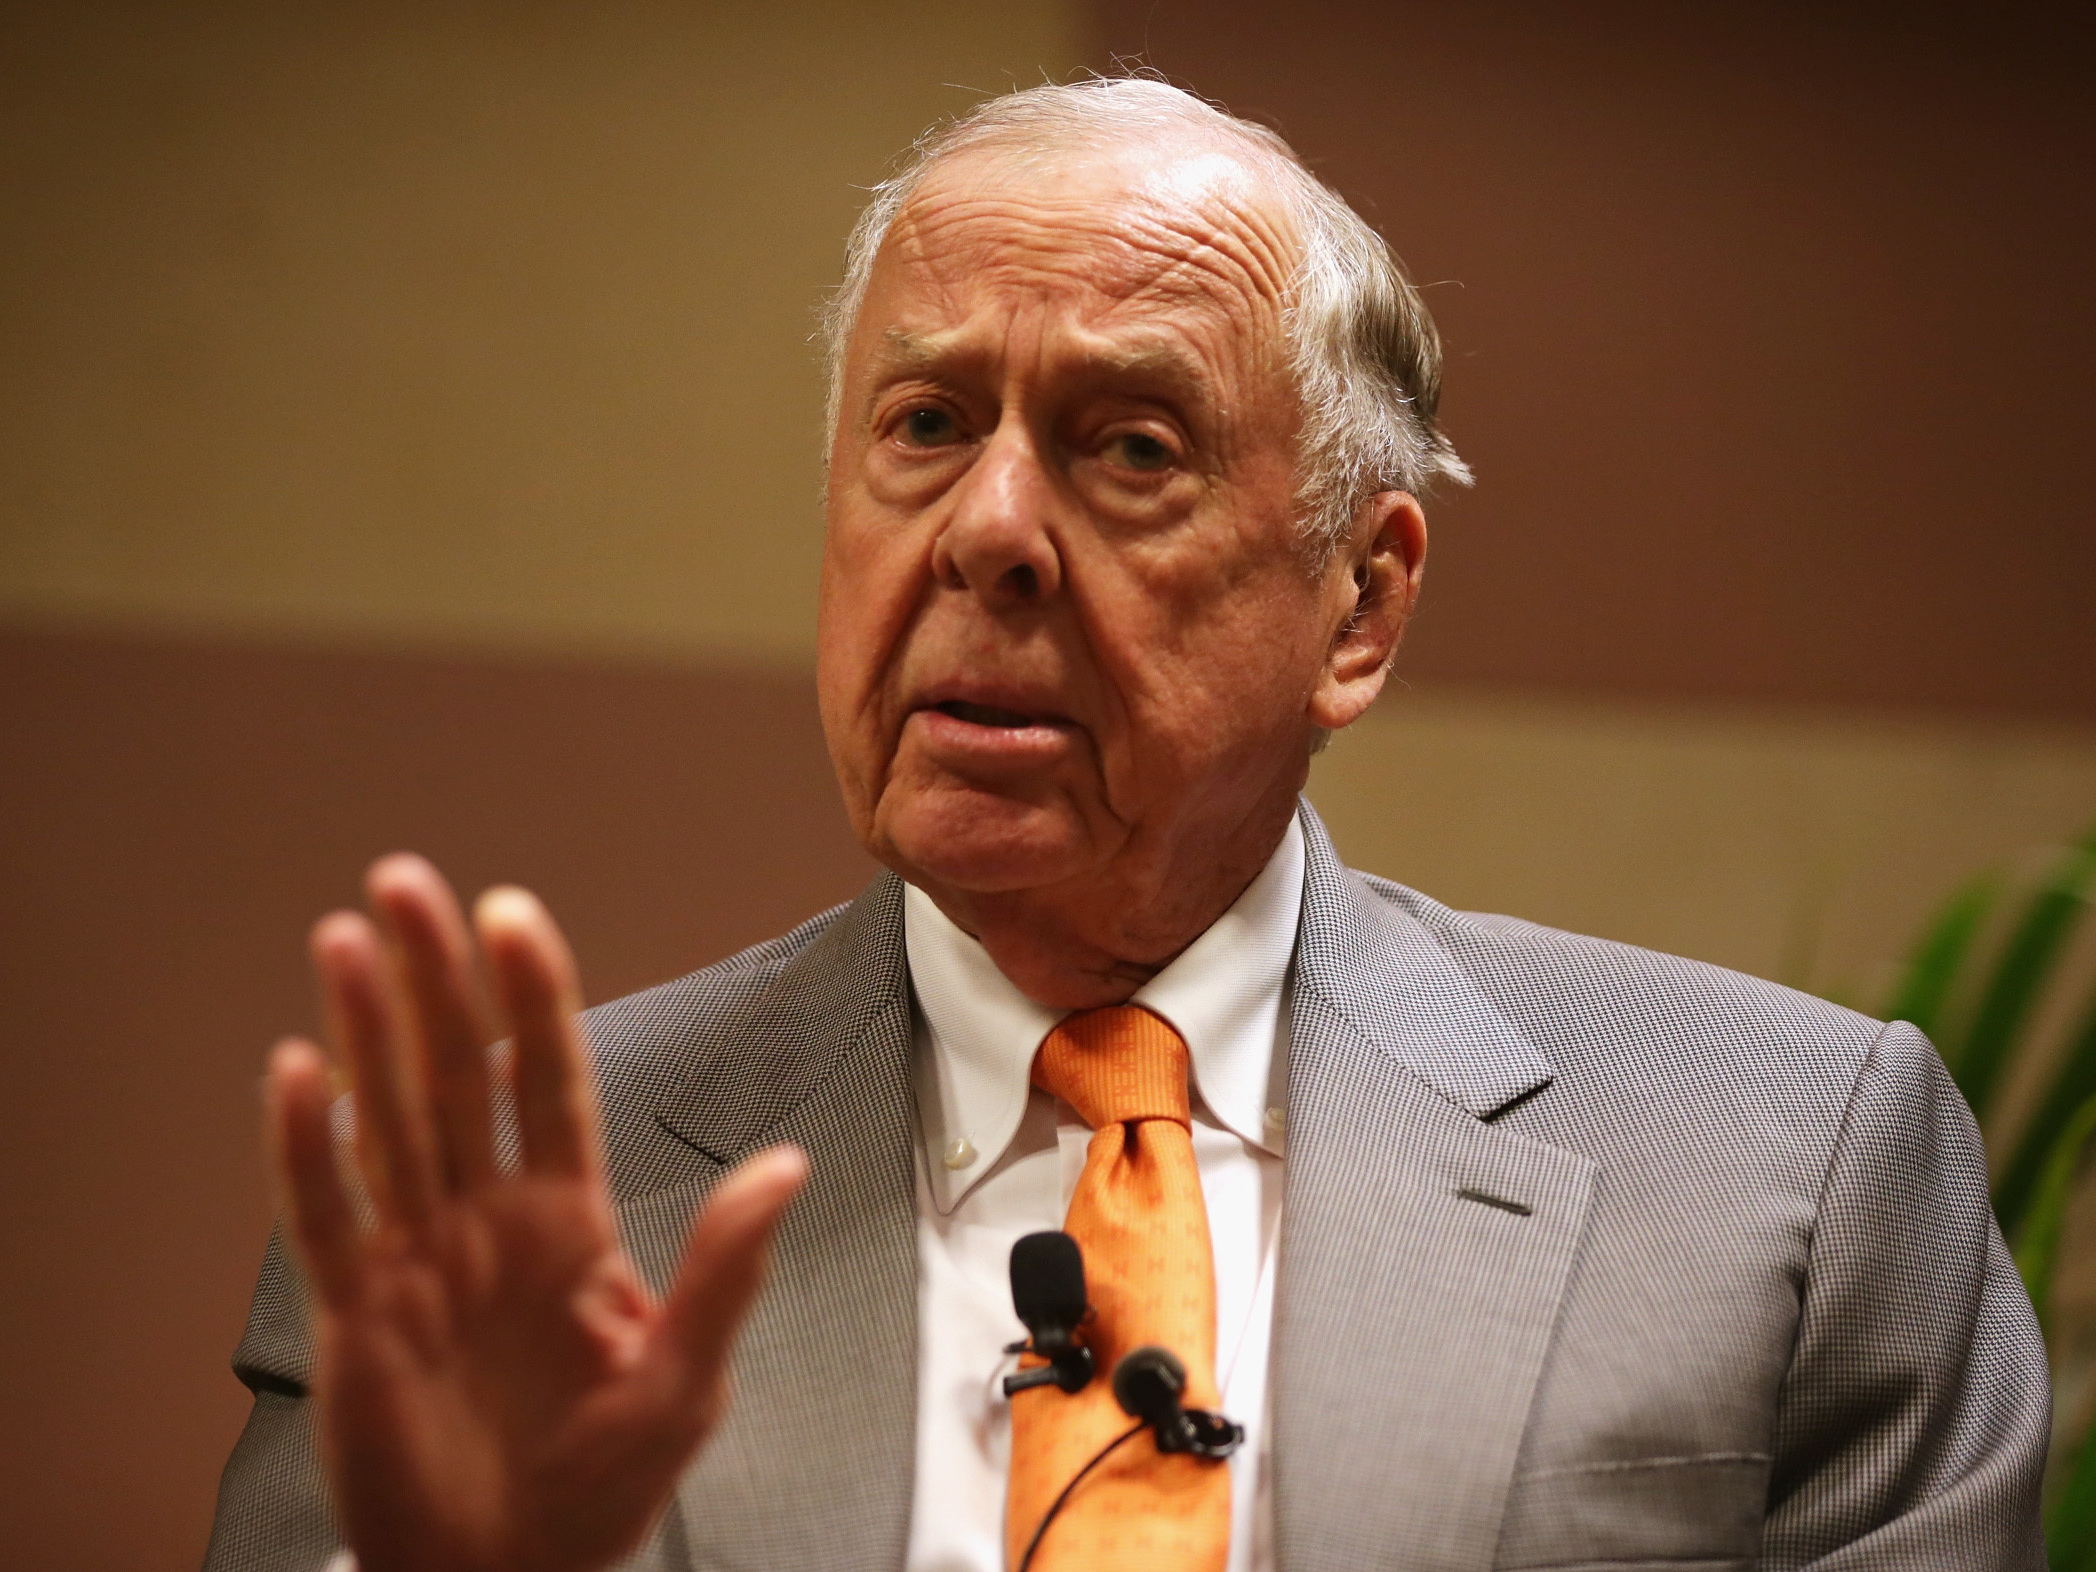 """T. Boone Pickens, founder and chairman of BP Capital Management, participates in a discussion during a """"birthday bash"""" last year in Oklahoma City. Alex Wong/Getty Images"""